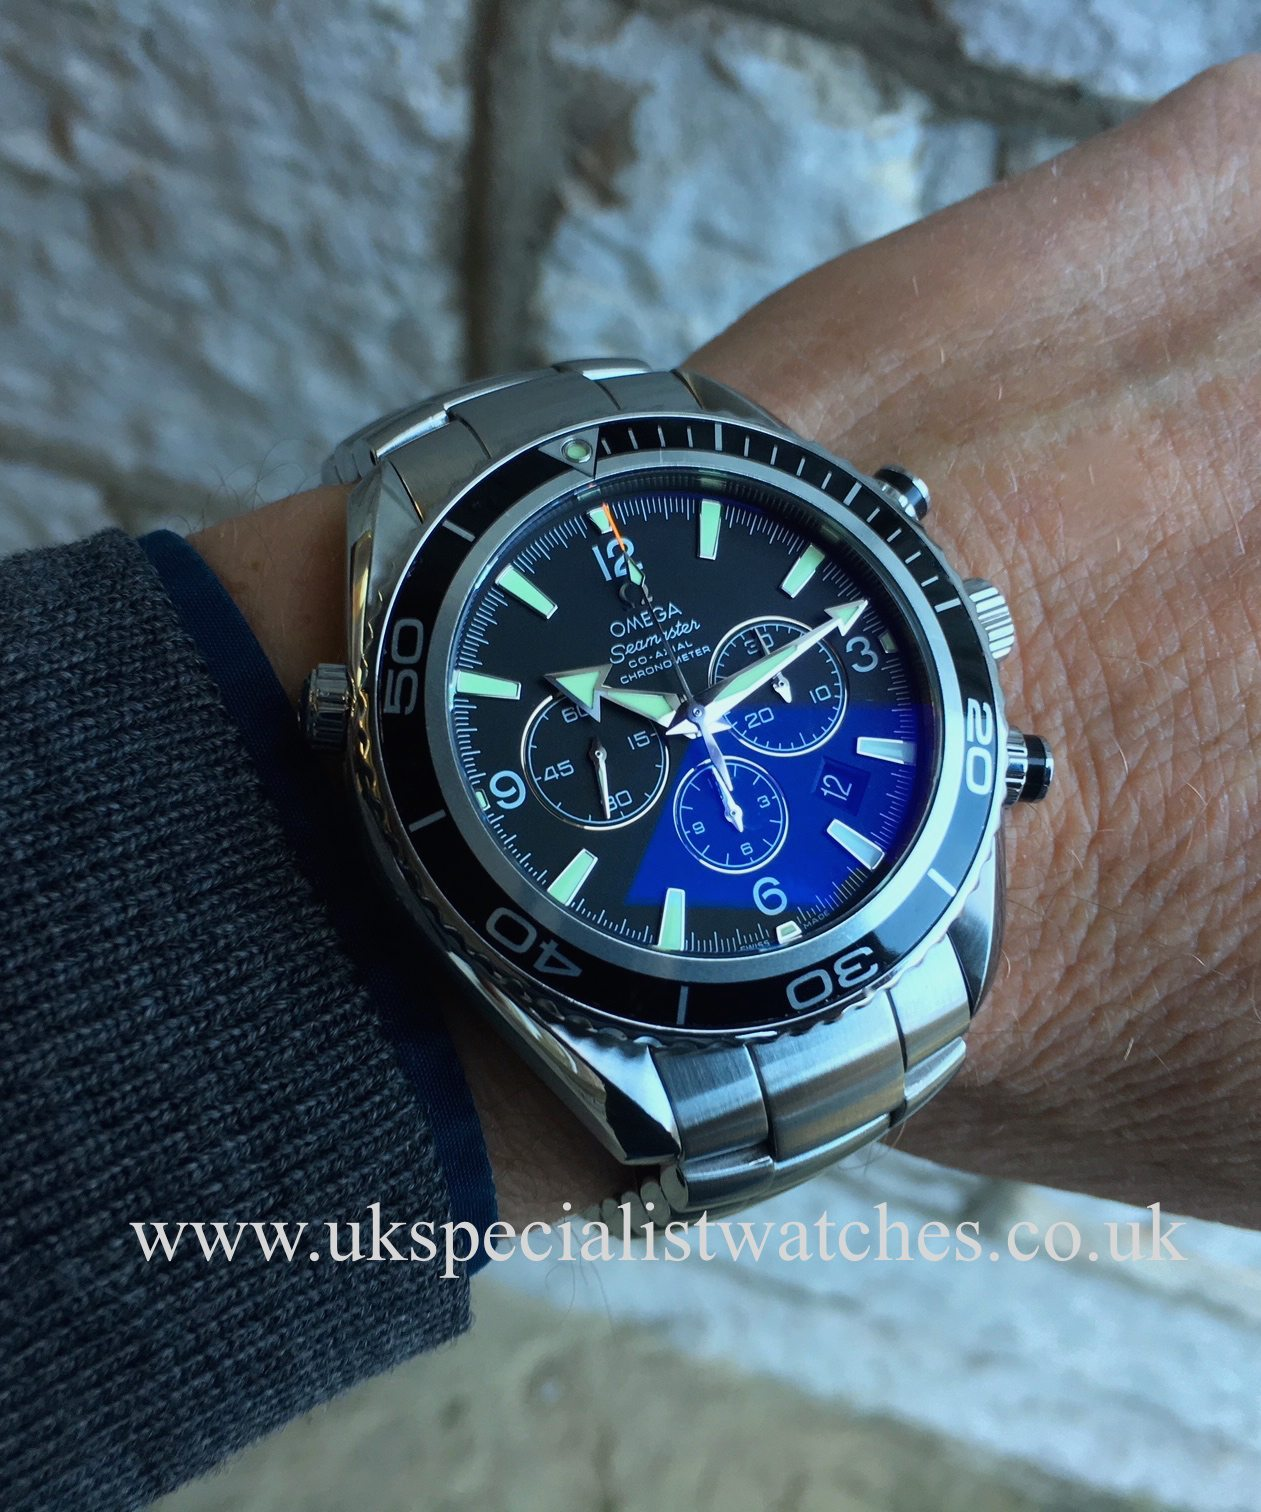 Ladies Rolex Watches Uk >> Omega Seamaster Planet Ocean Chrono – 45.5mm – 2210.50.00 – UK Specialist Watches